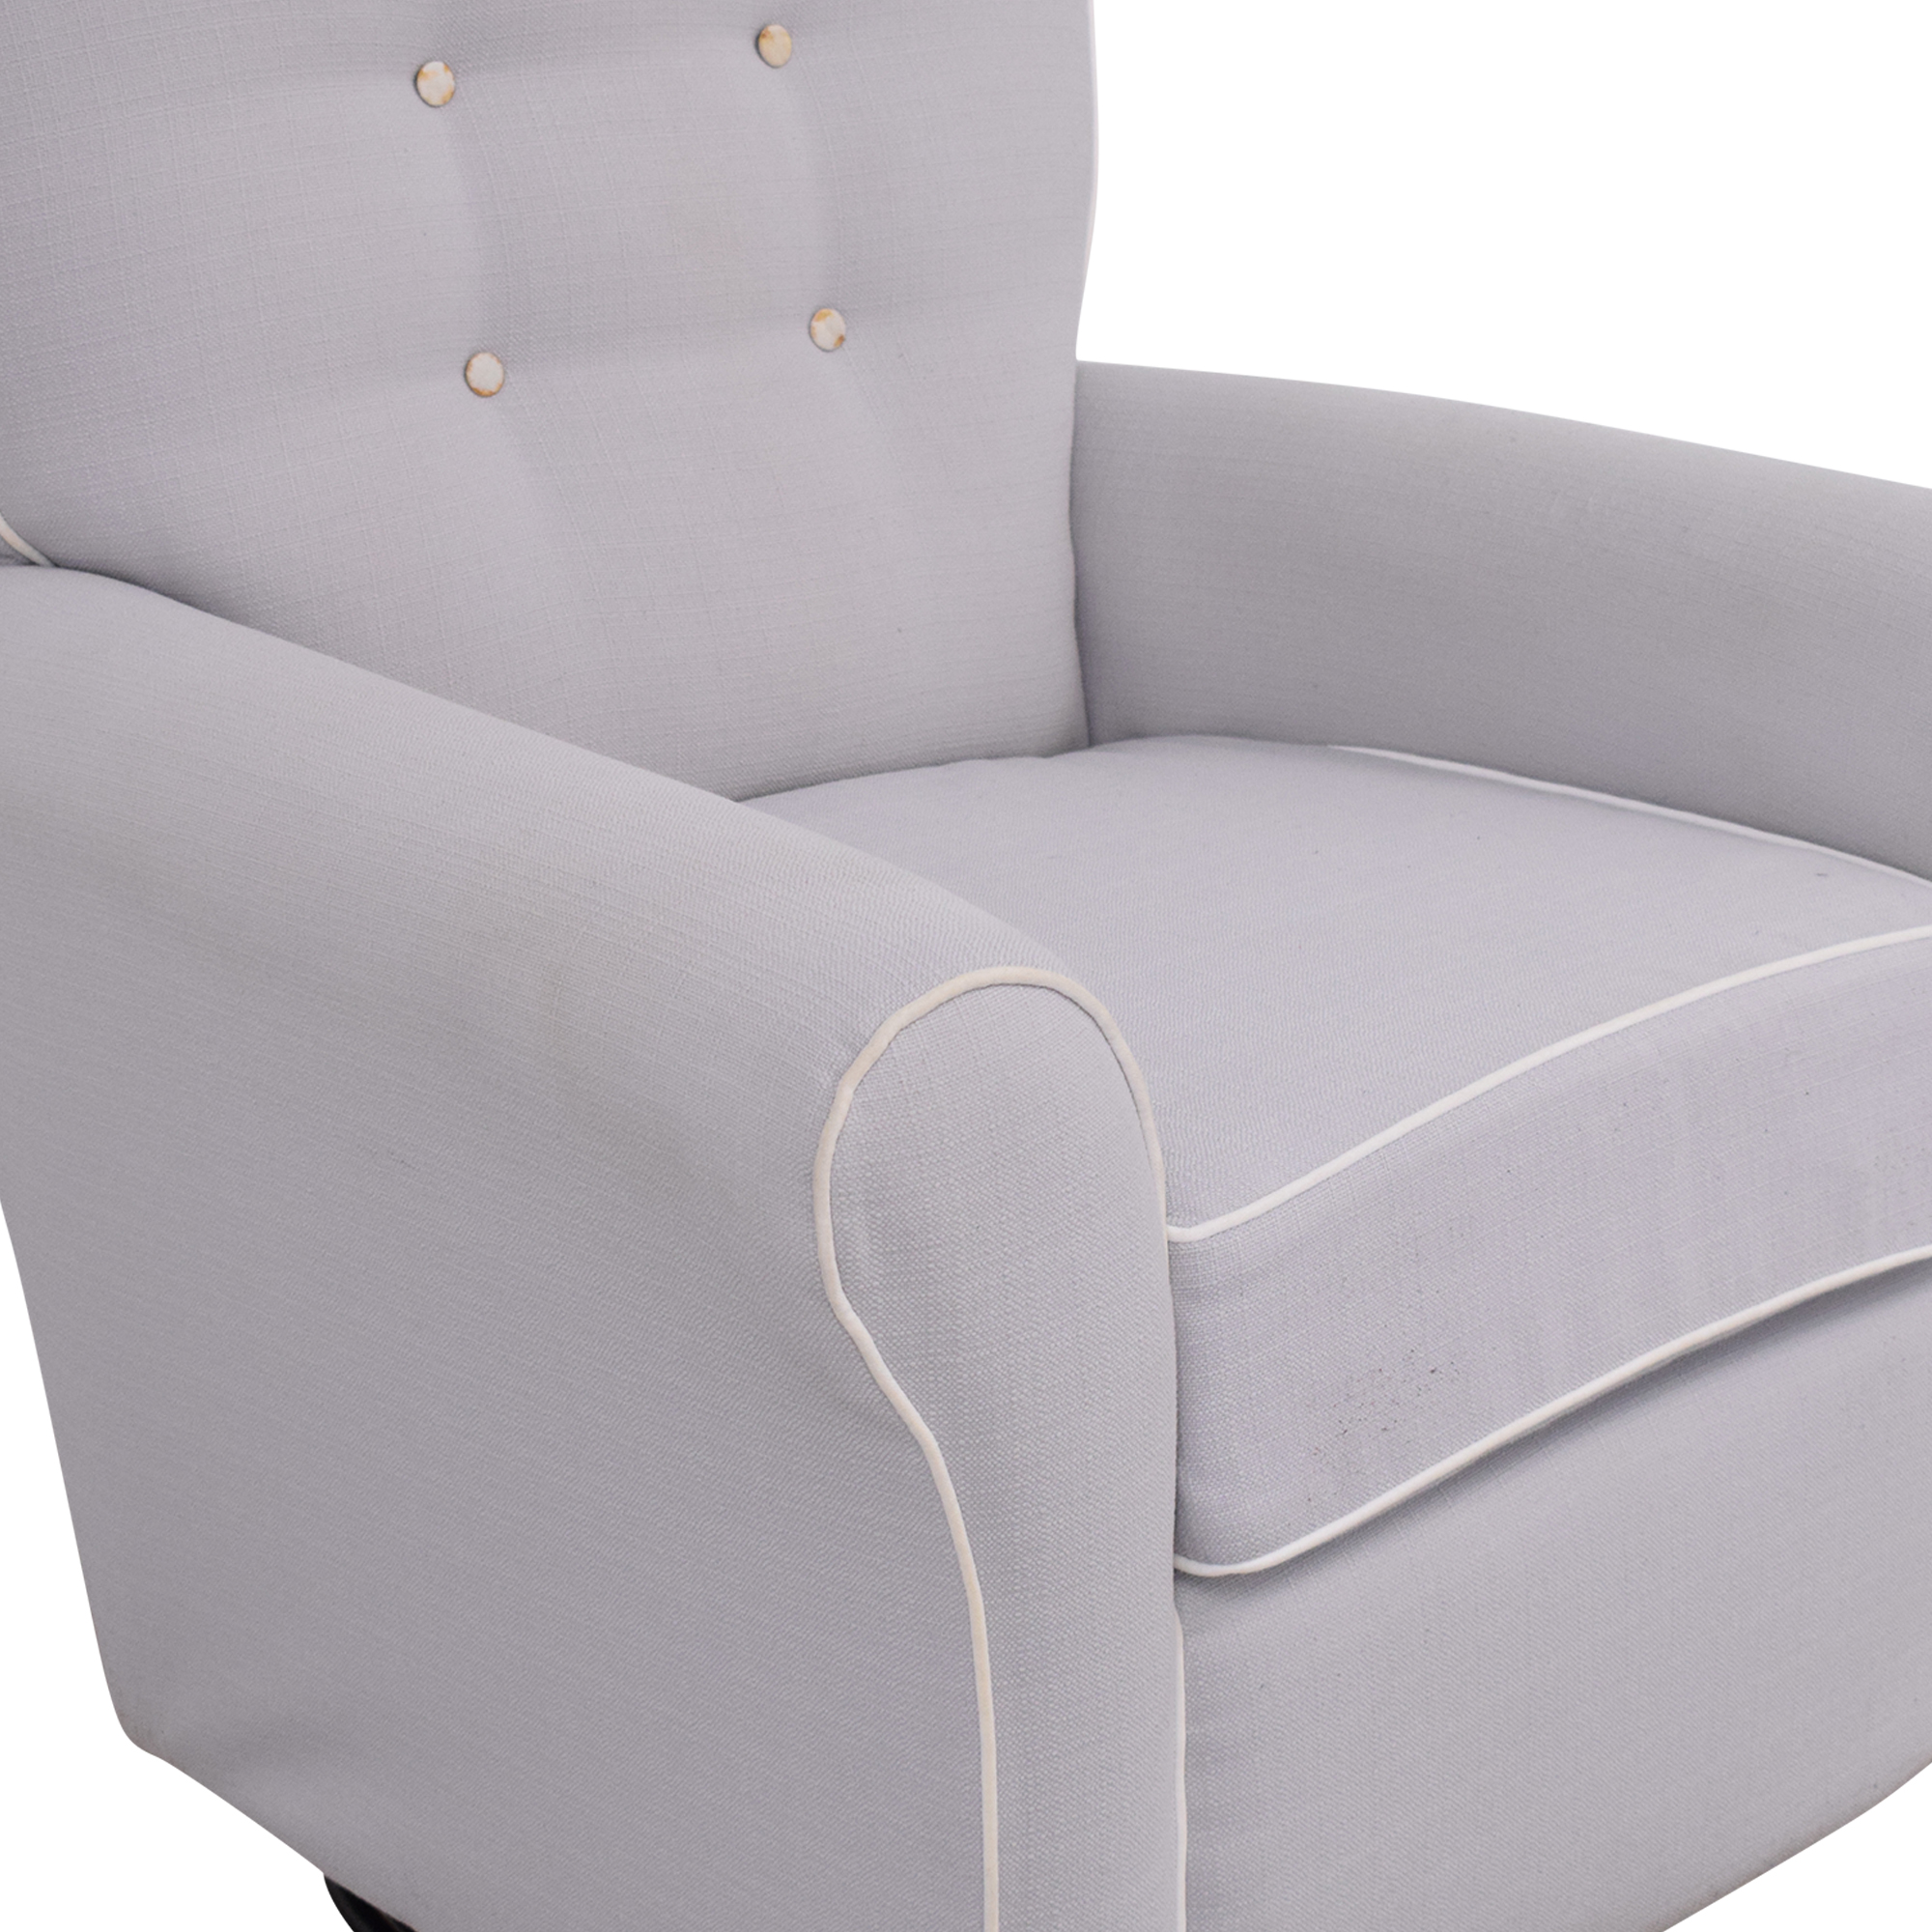 Tufted Glider Swivel Rocker Chair price